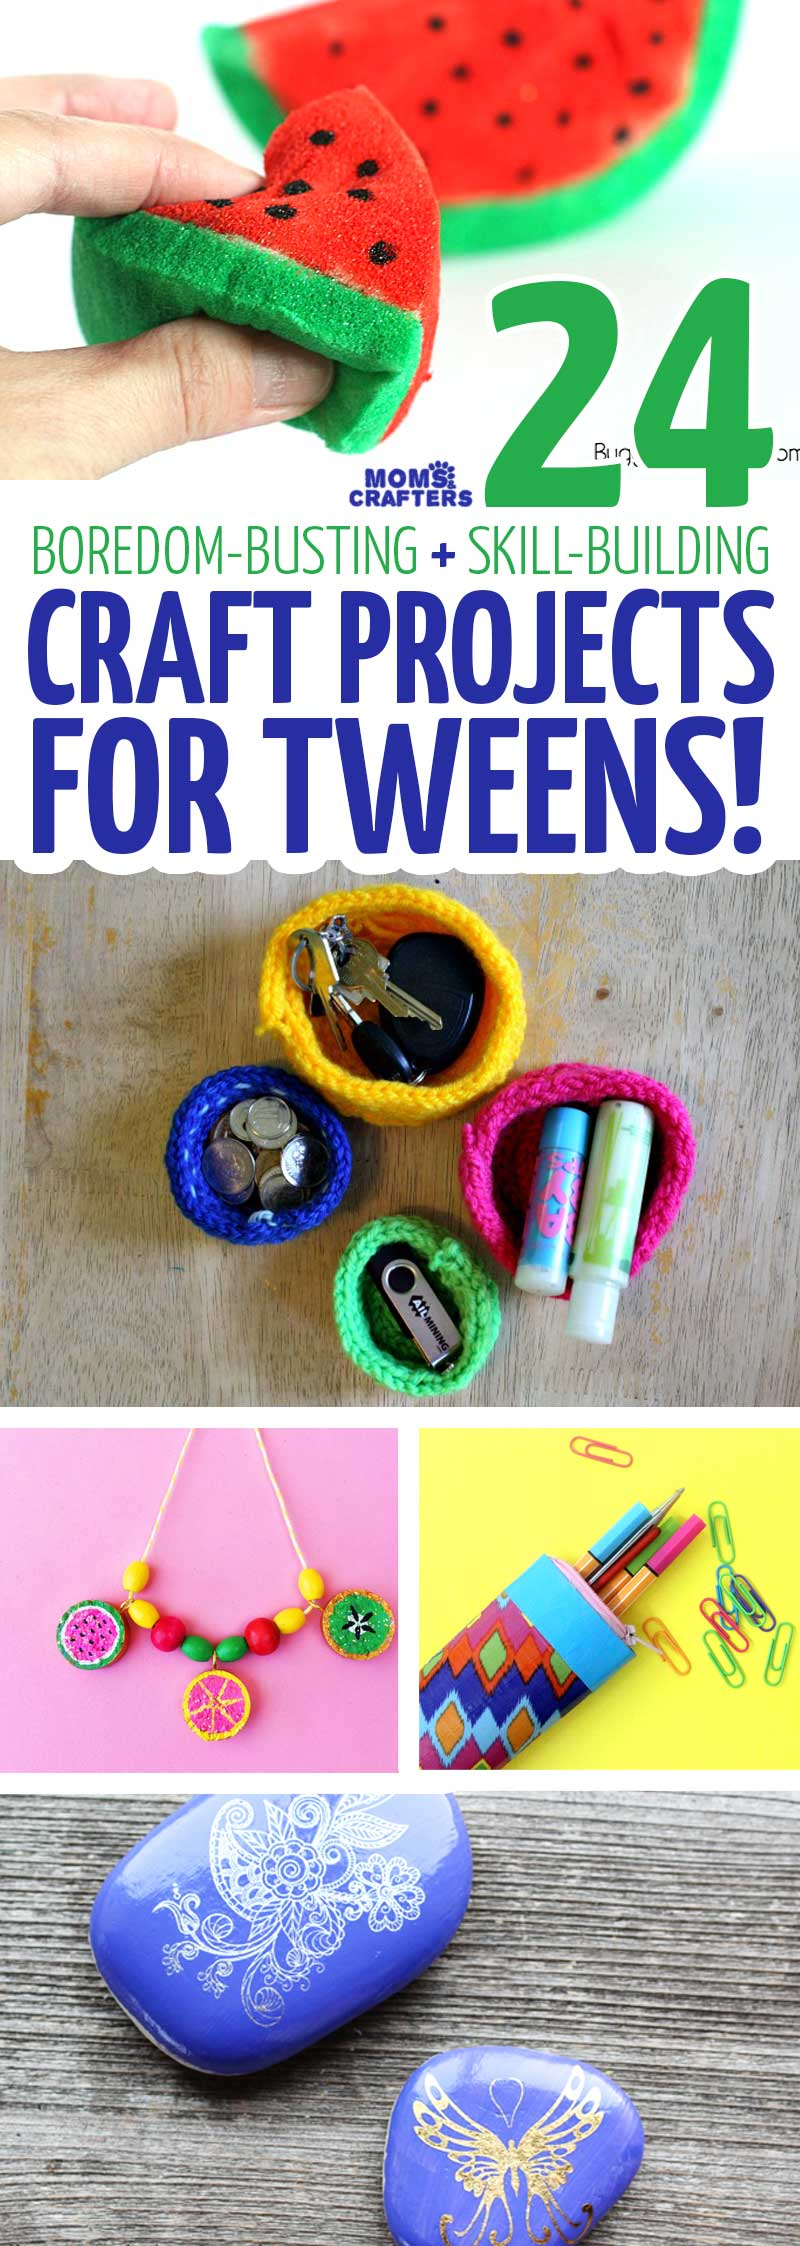 Craft Projects For Tweens 24 Cool Crafts And Skills To Learn